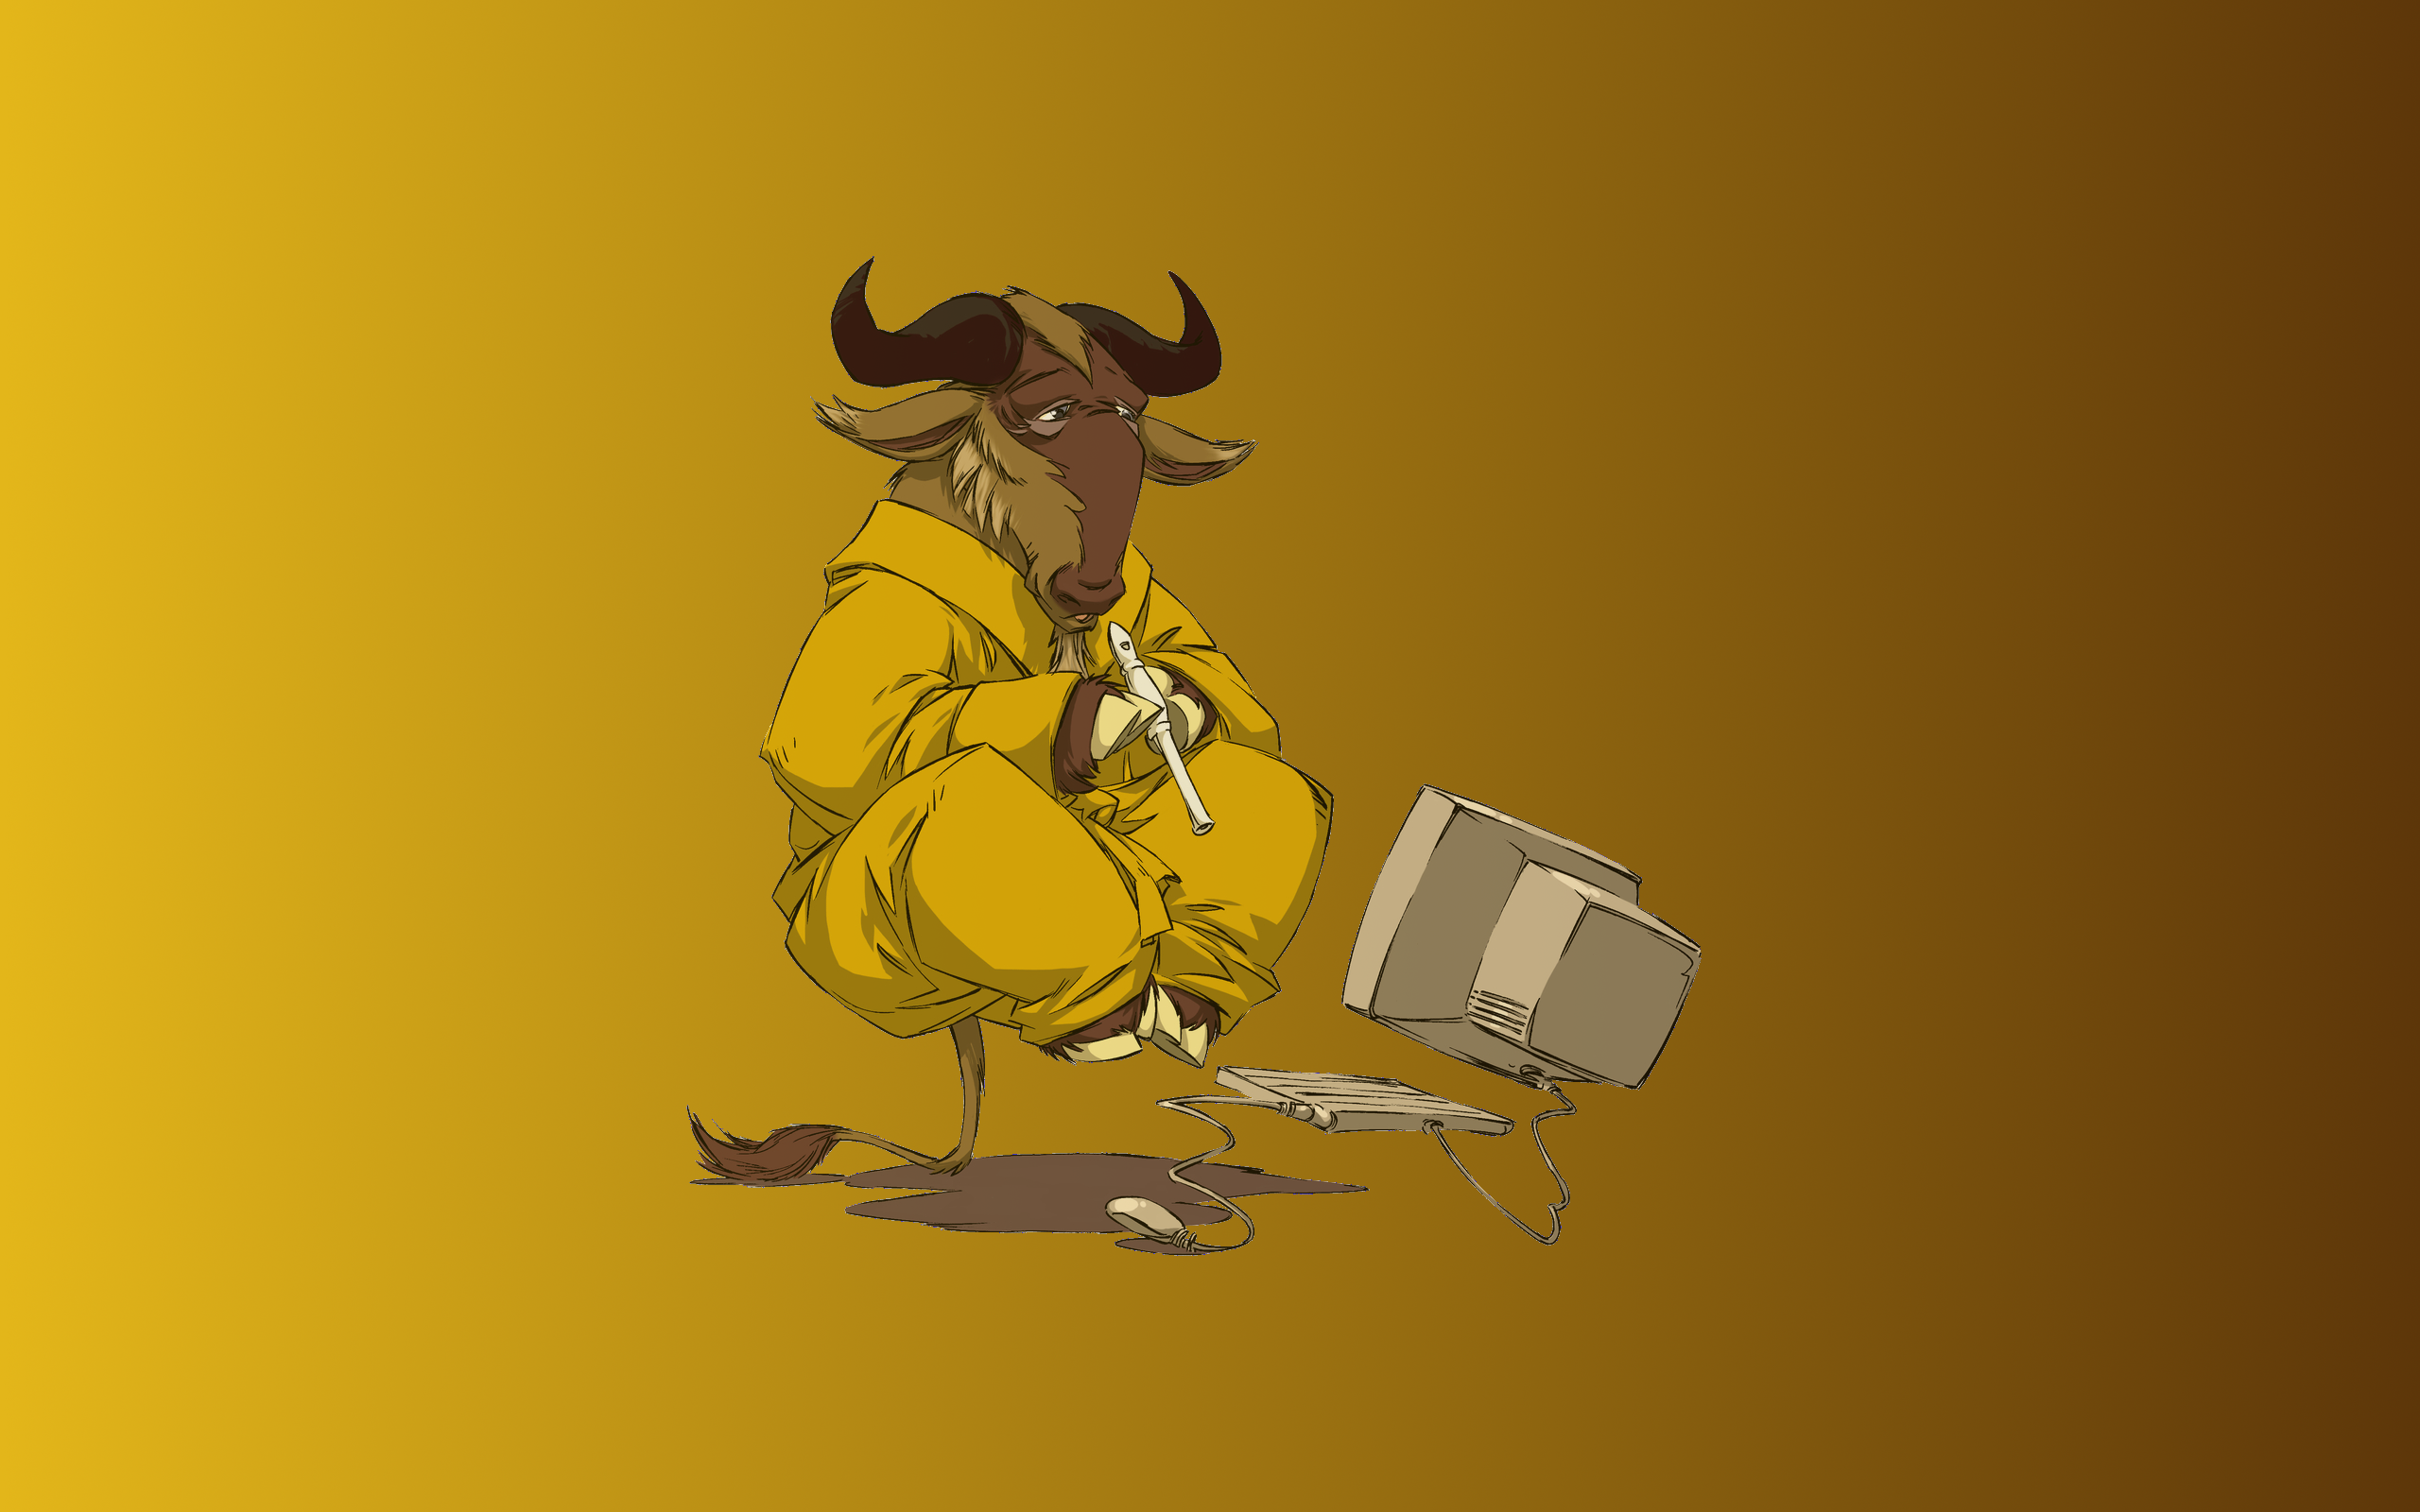 Pictures of Gnu HD, 2560x1600 px, October 20, 2014